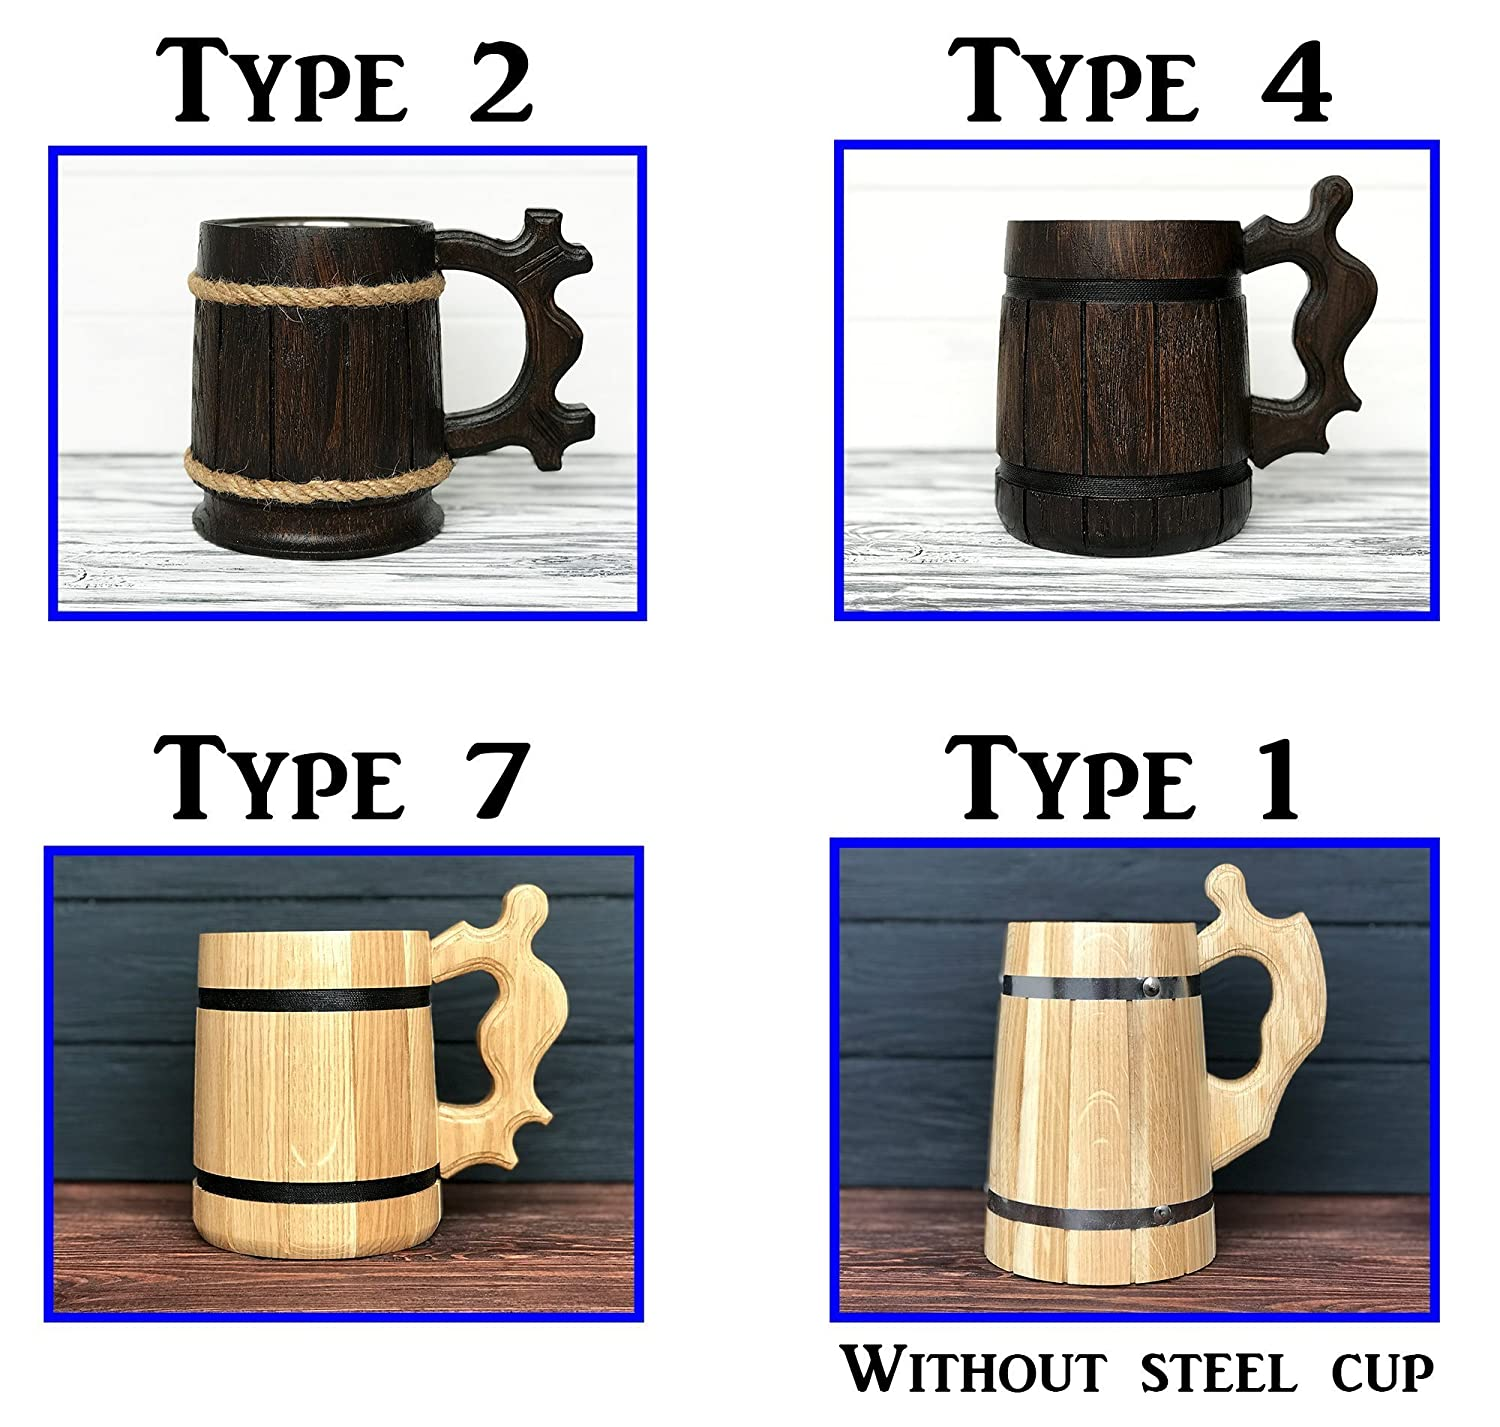 Best Gift D/&D Gift Gamer Wooden Beer Mug Dungeon and Dragons Mug Personalized Gamer Gift Beer Tankard Gift K86 Personalized Beer Stein